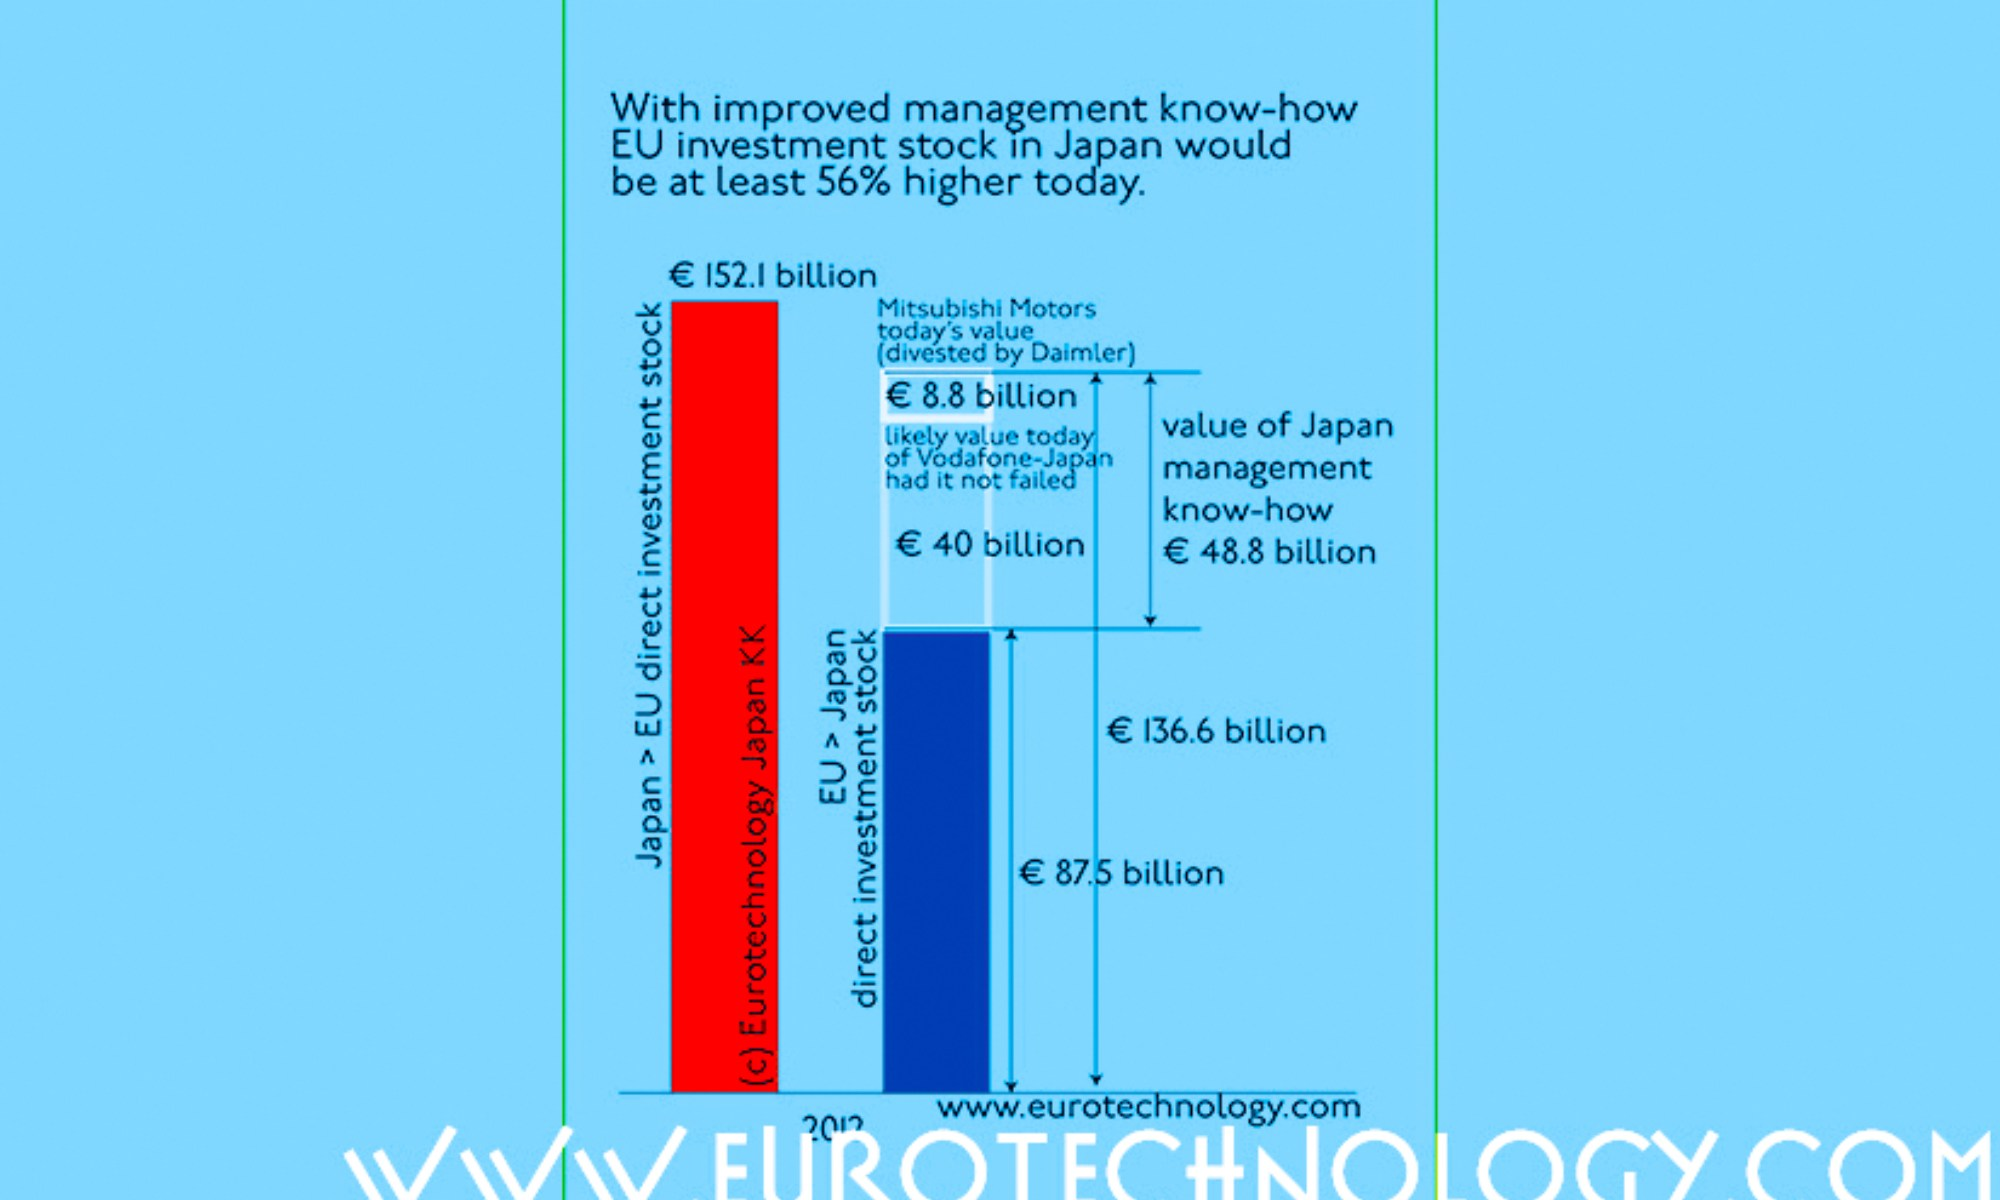 EU Japan management: what is the value of good management in Japan?